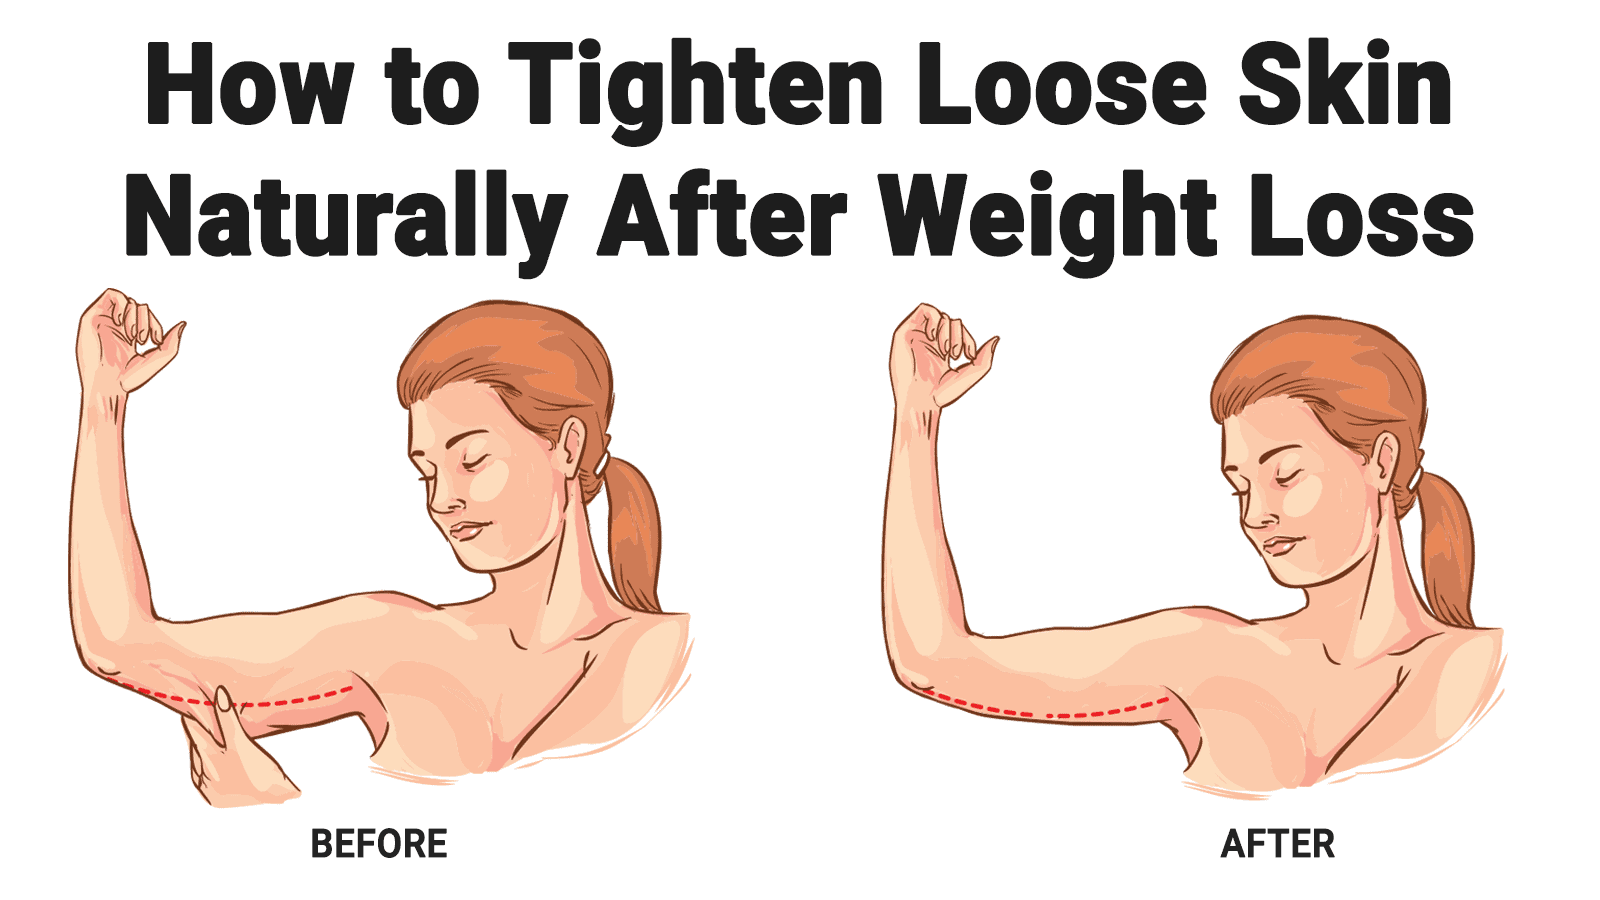 How slow to lose weight to avoid loose skin